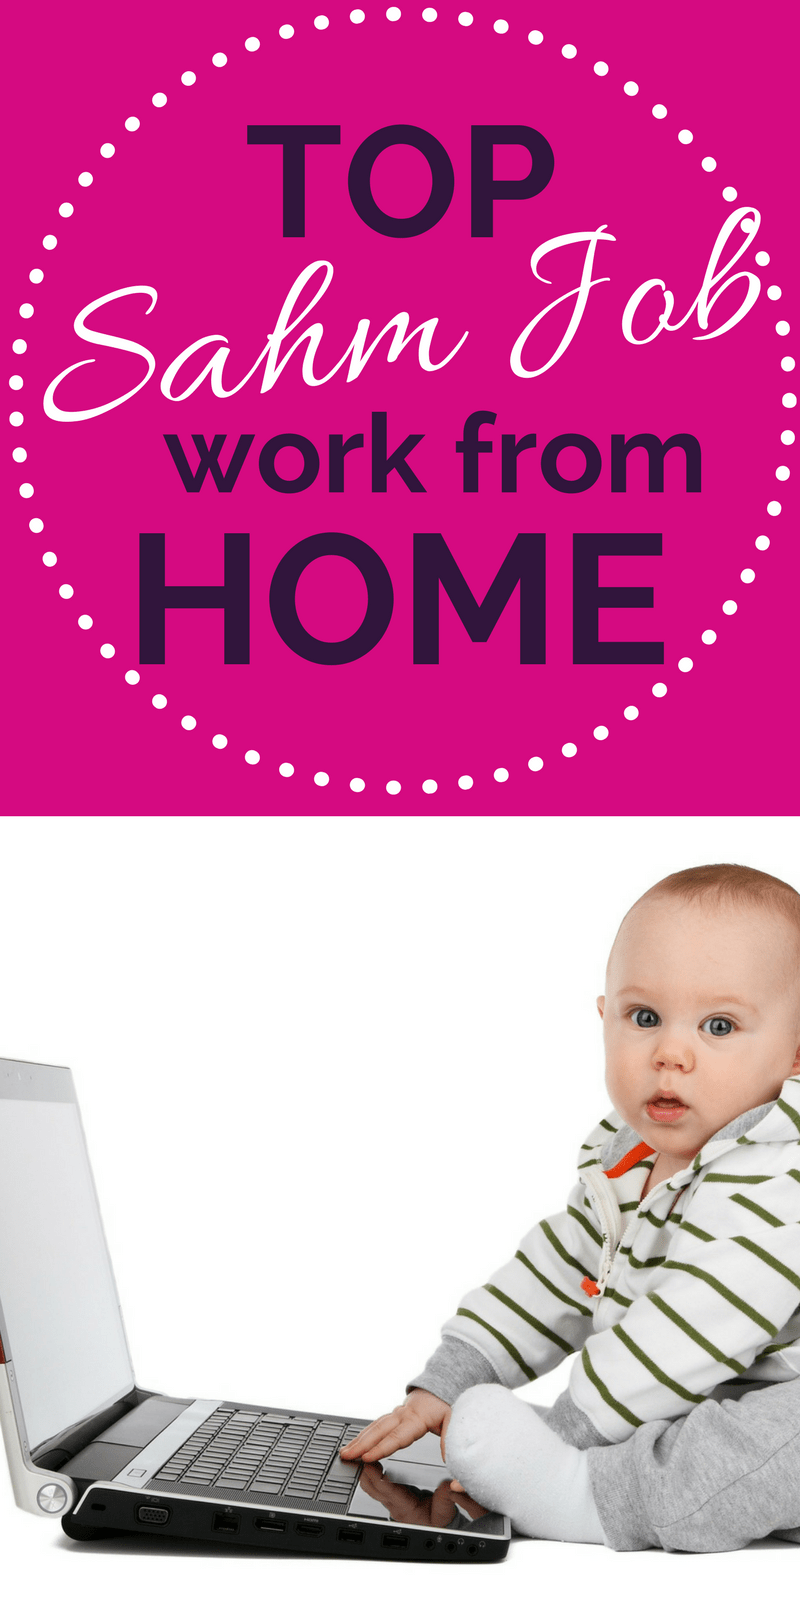 Looking for a work at home job that actually pays? This is